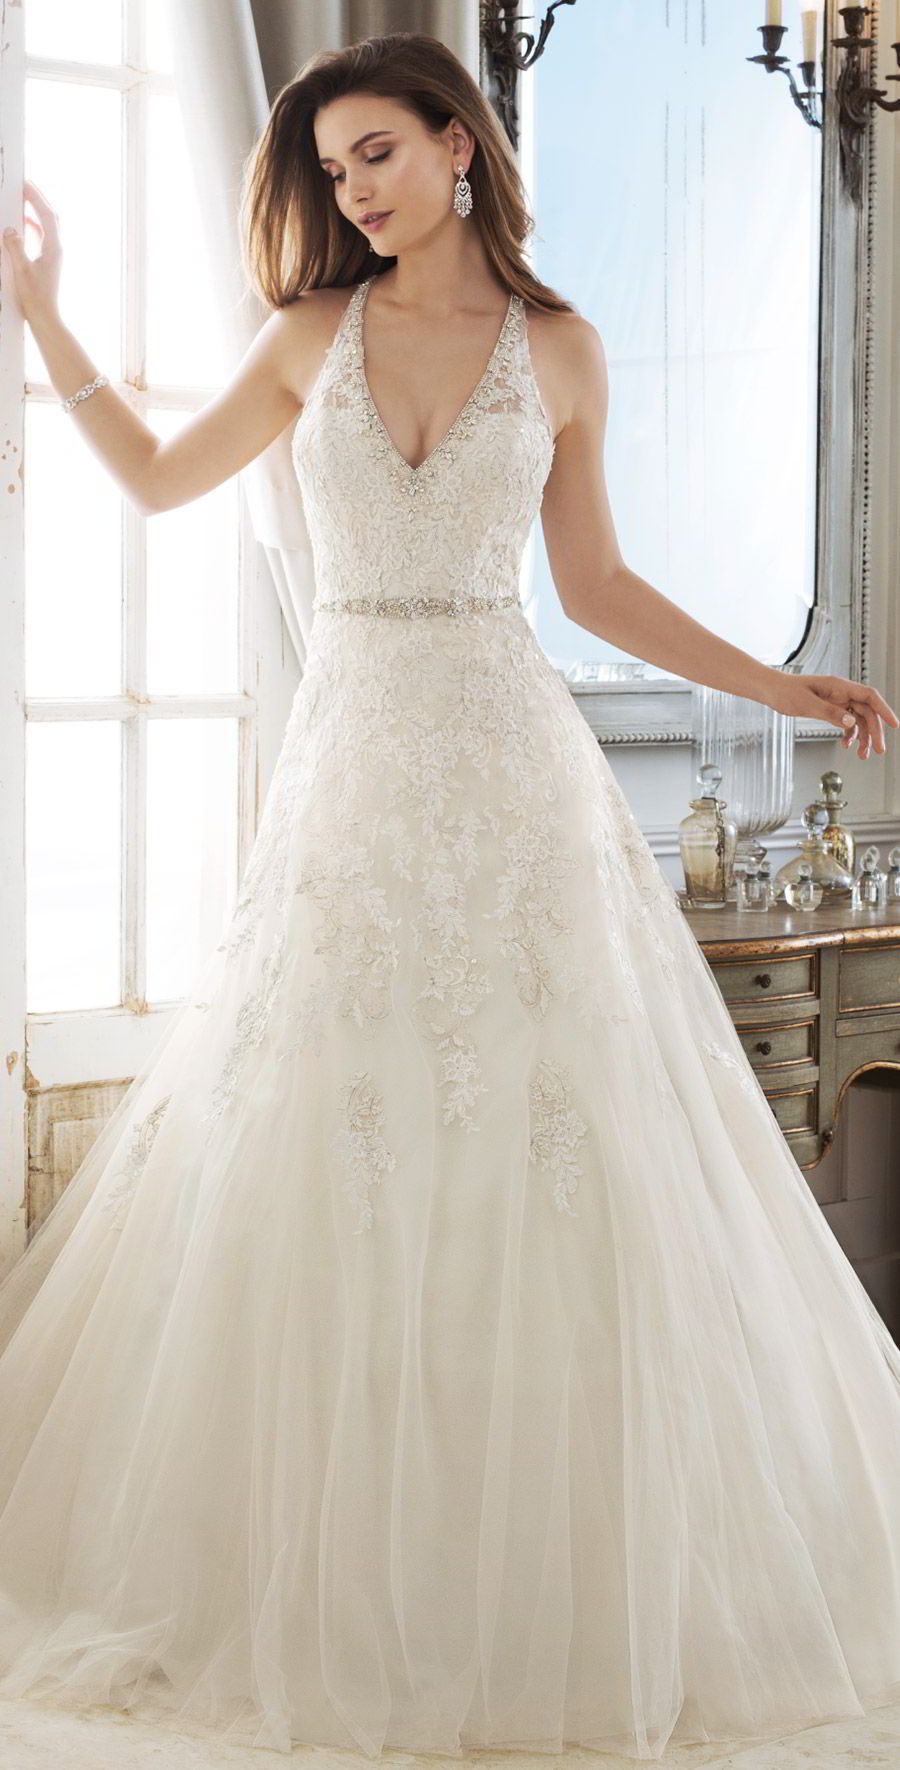 sophia tolli spring 2018 mon cheri bridals sleeveless illusion straps deep v neck beaded waist metallic lace bodice a line wedding dress ( y11878 kali) mv chapel train elegant